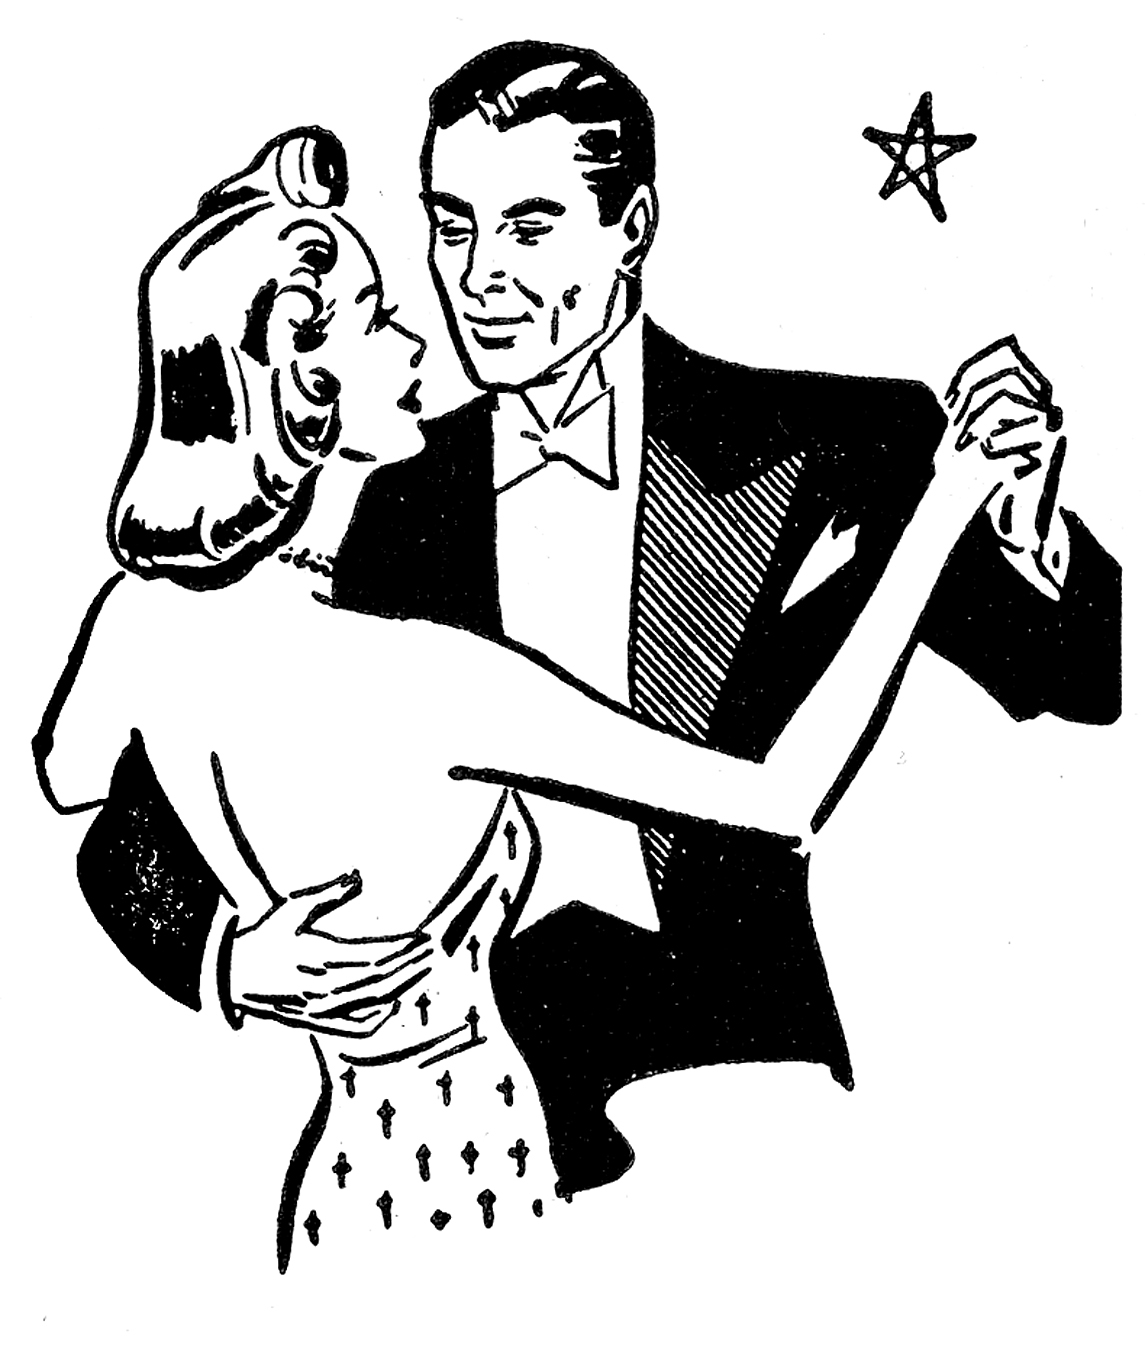 Retro clip art couples. Anniversary clipart black and white